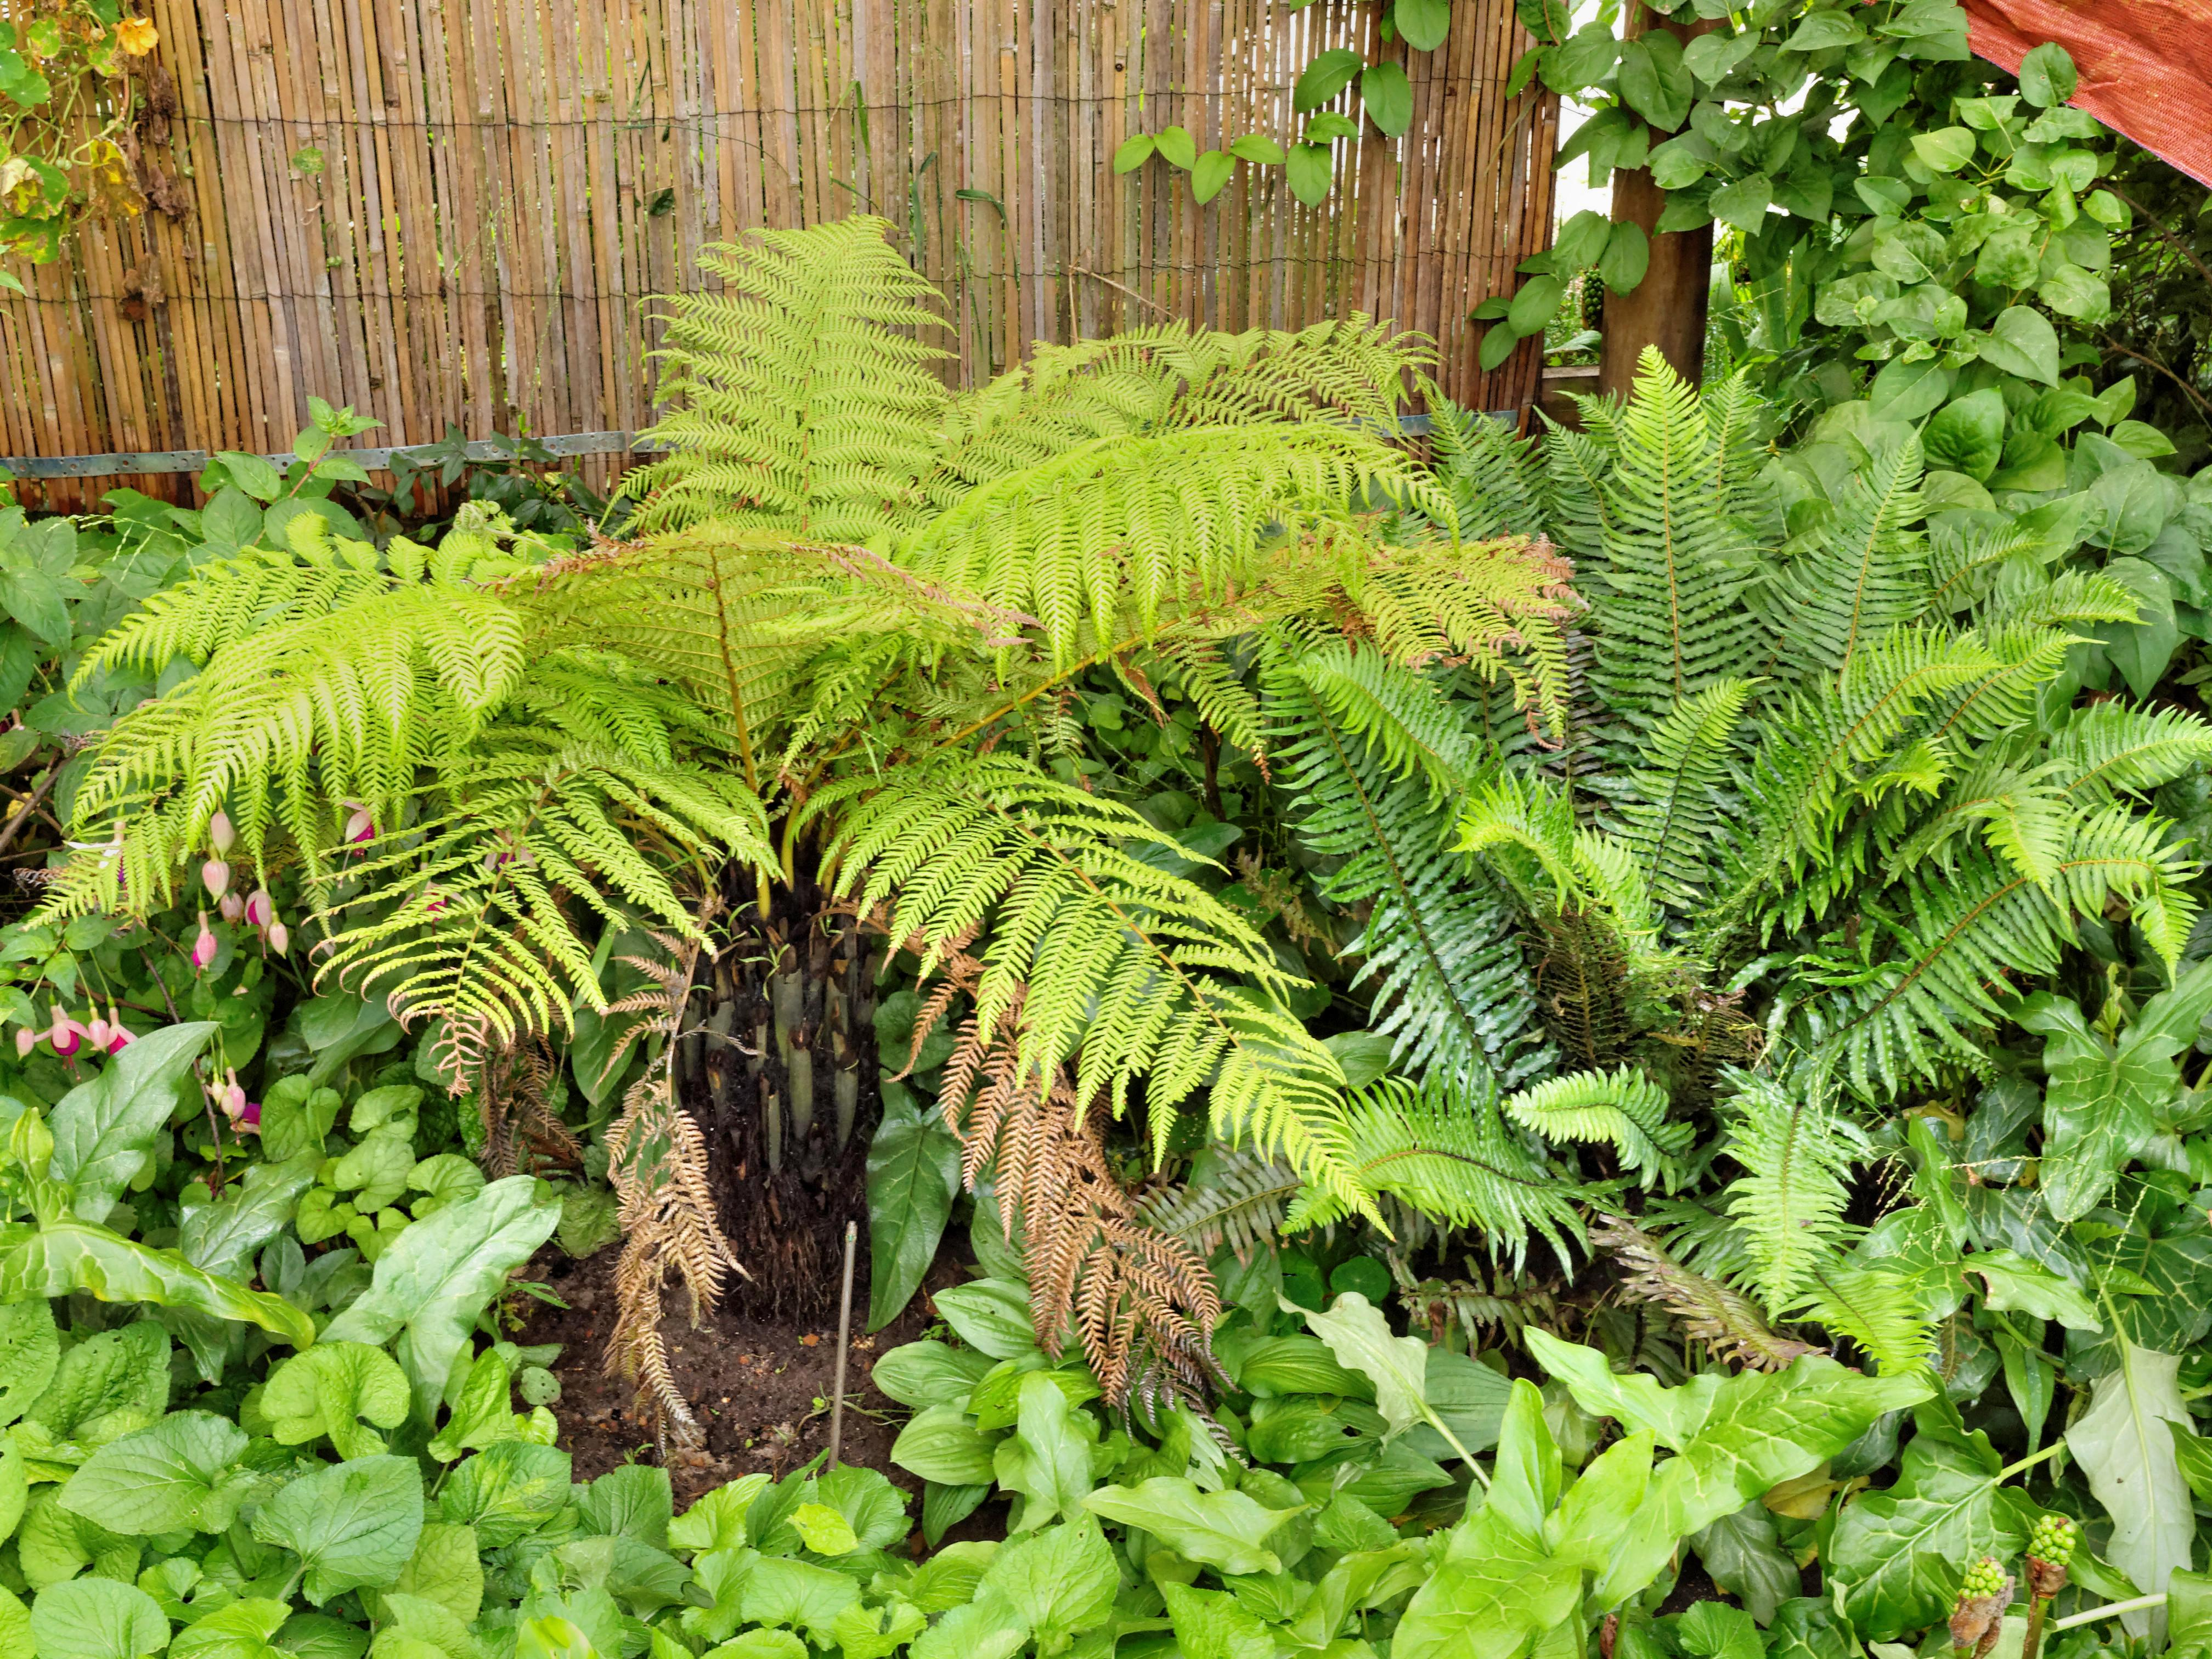 Tree-fern-2.jpeg